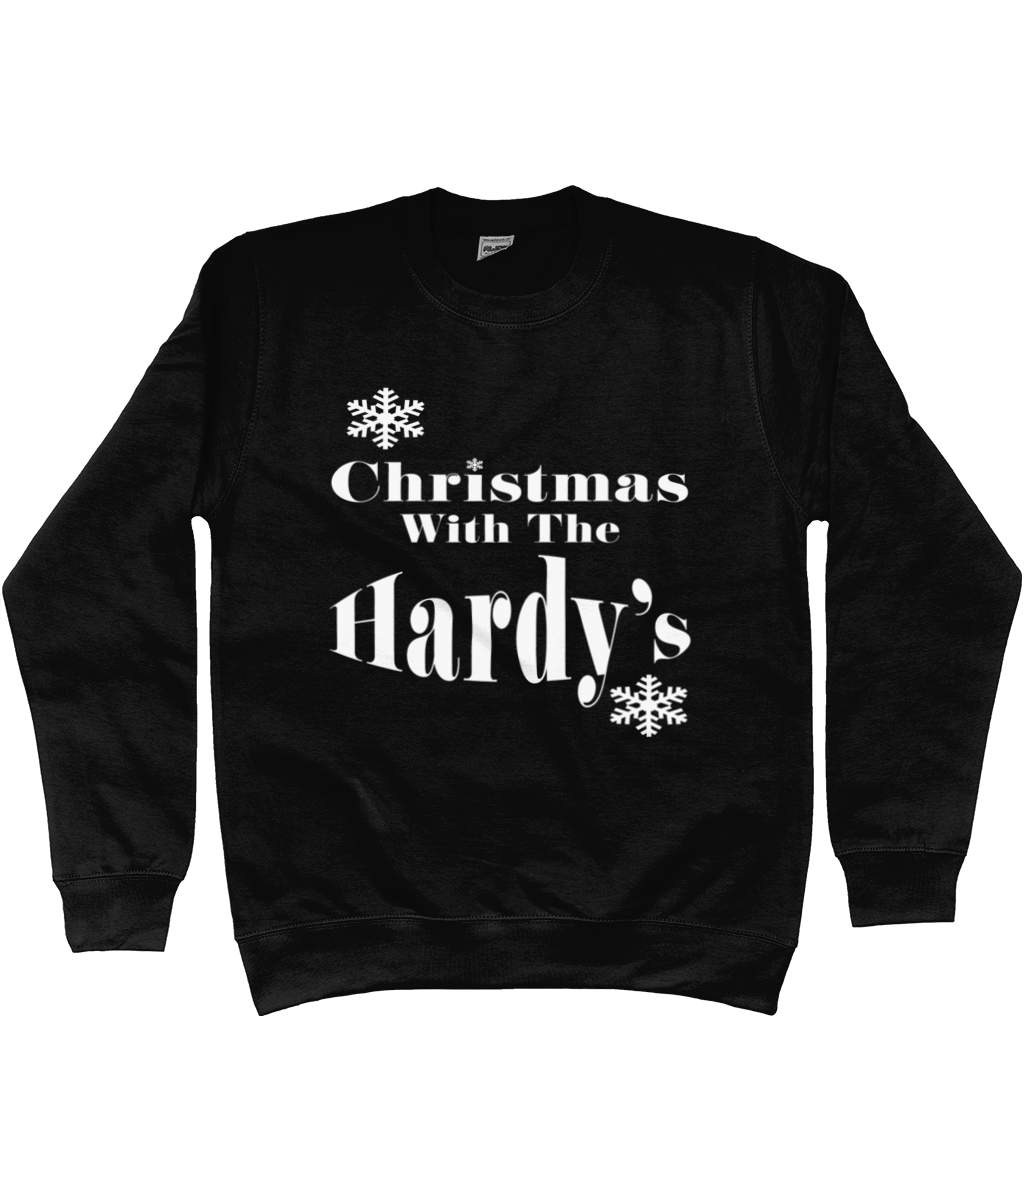 Children's Personalised Unisex Christmas With Jumper